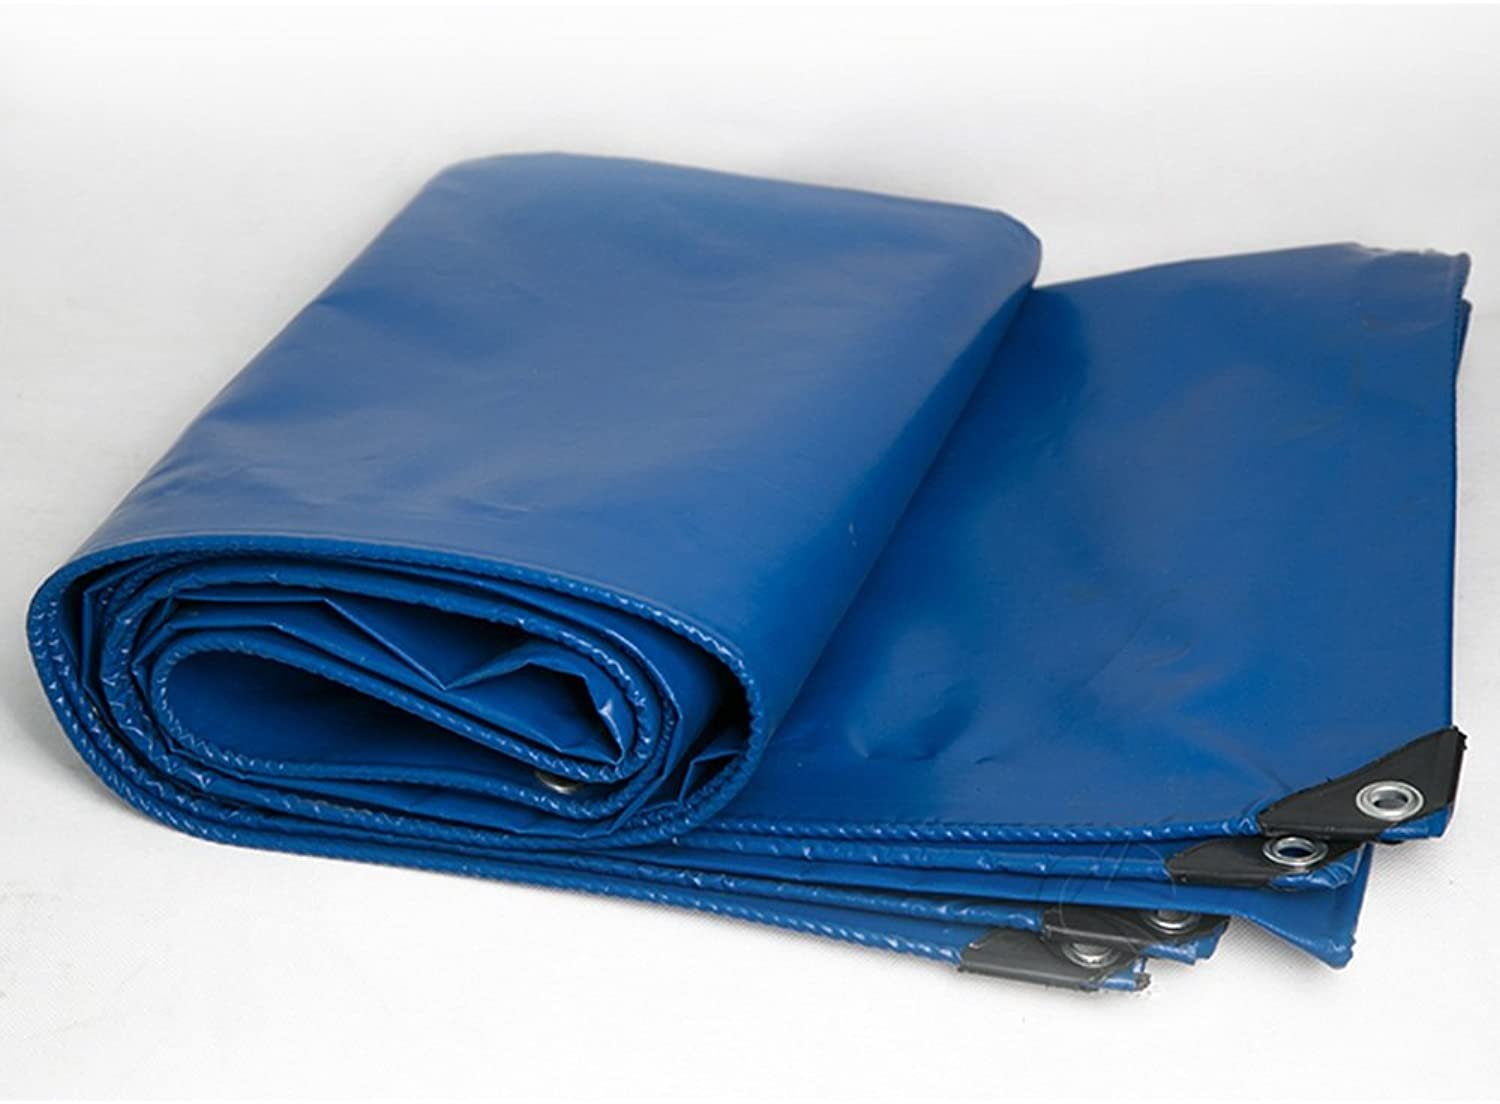 ZRTarps Tarp Cover blueee Heavy Duty Thick Material, Waterproof, Great for Tarpaulin Canopy Tent, Boat, RV or Pool Cover  450g m2 Thickness 0.43mm Outdoor Equipment (Size   5  6m)